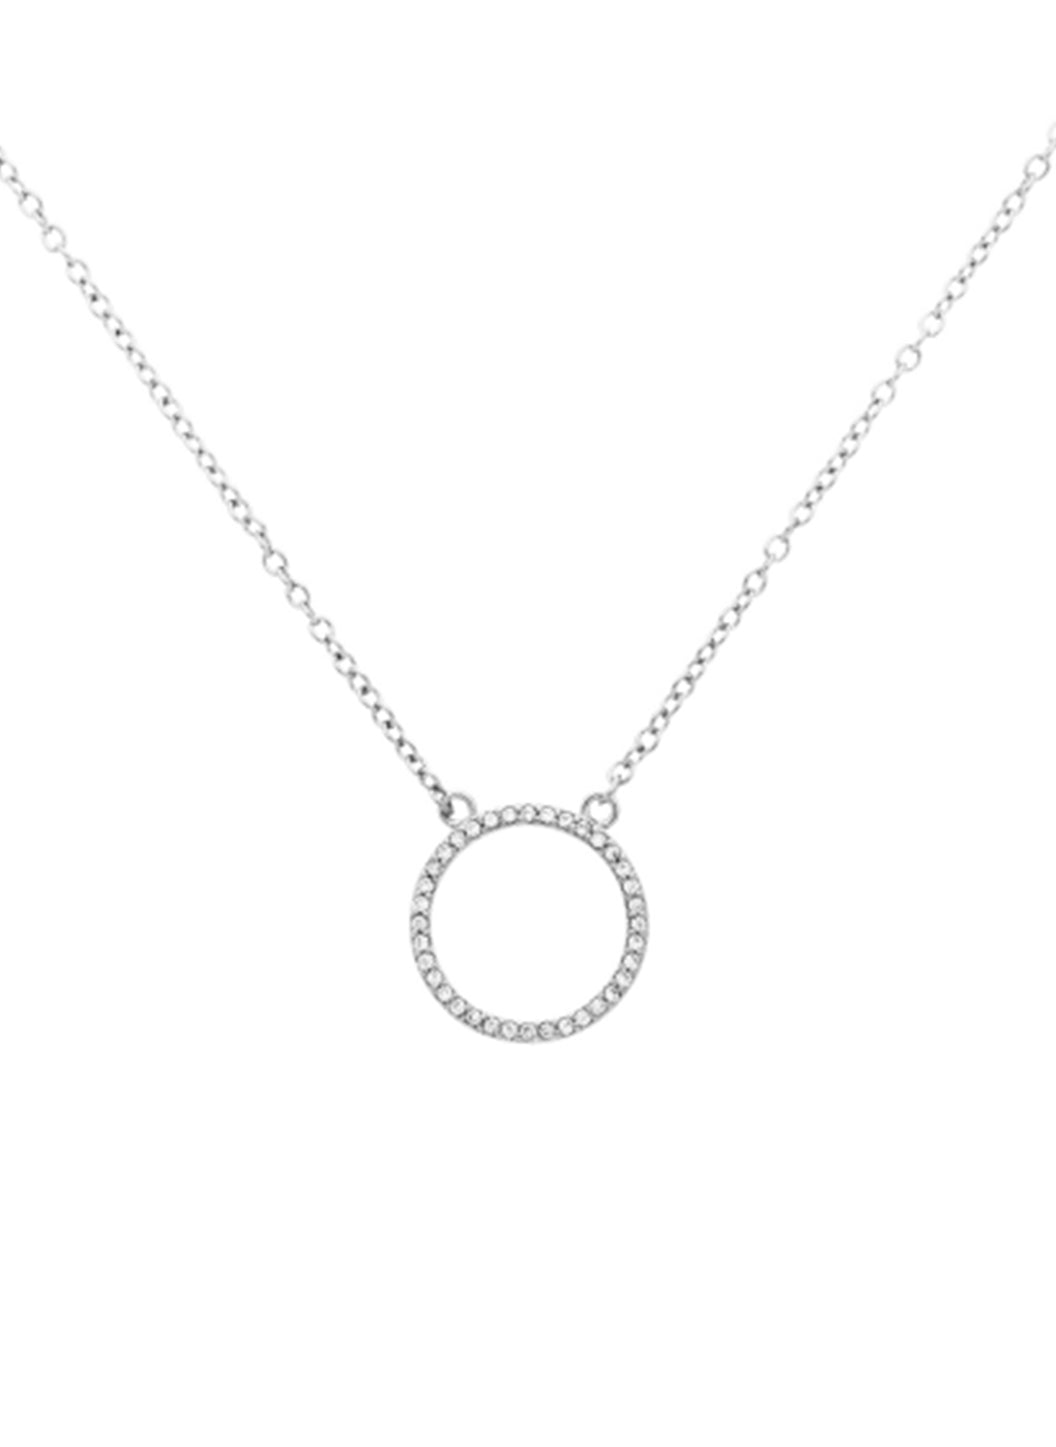 Silver Crystal Circle Necklace